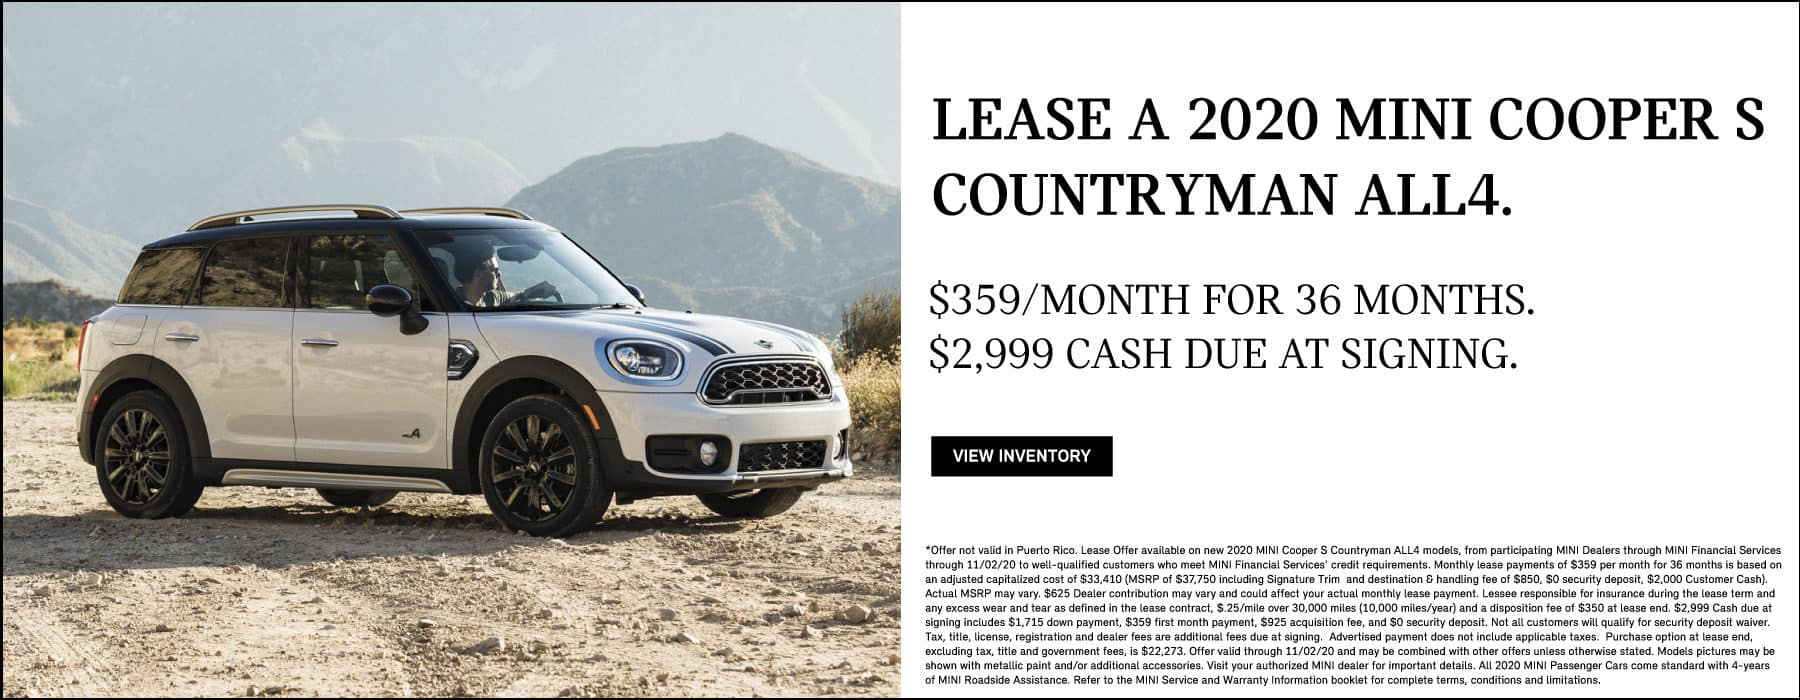 Lease a 2020 MINI Cooper S Countryman ALL4 for $359/mo. View Inventory